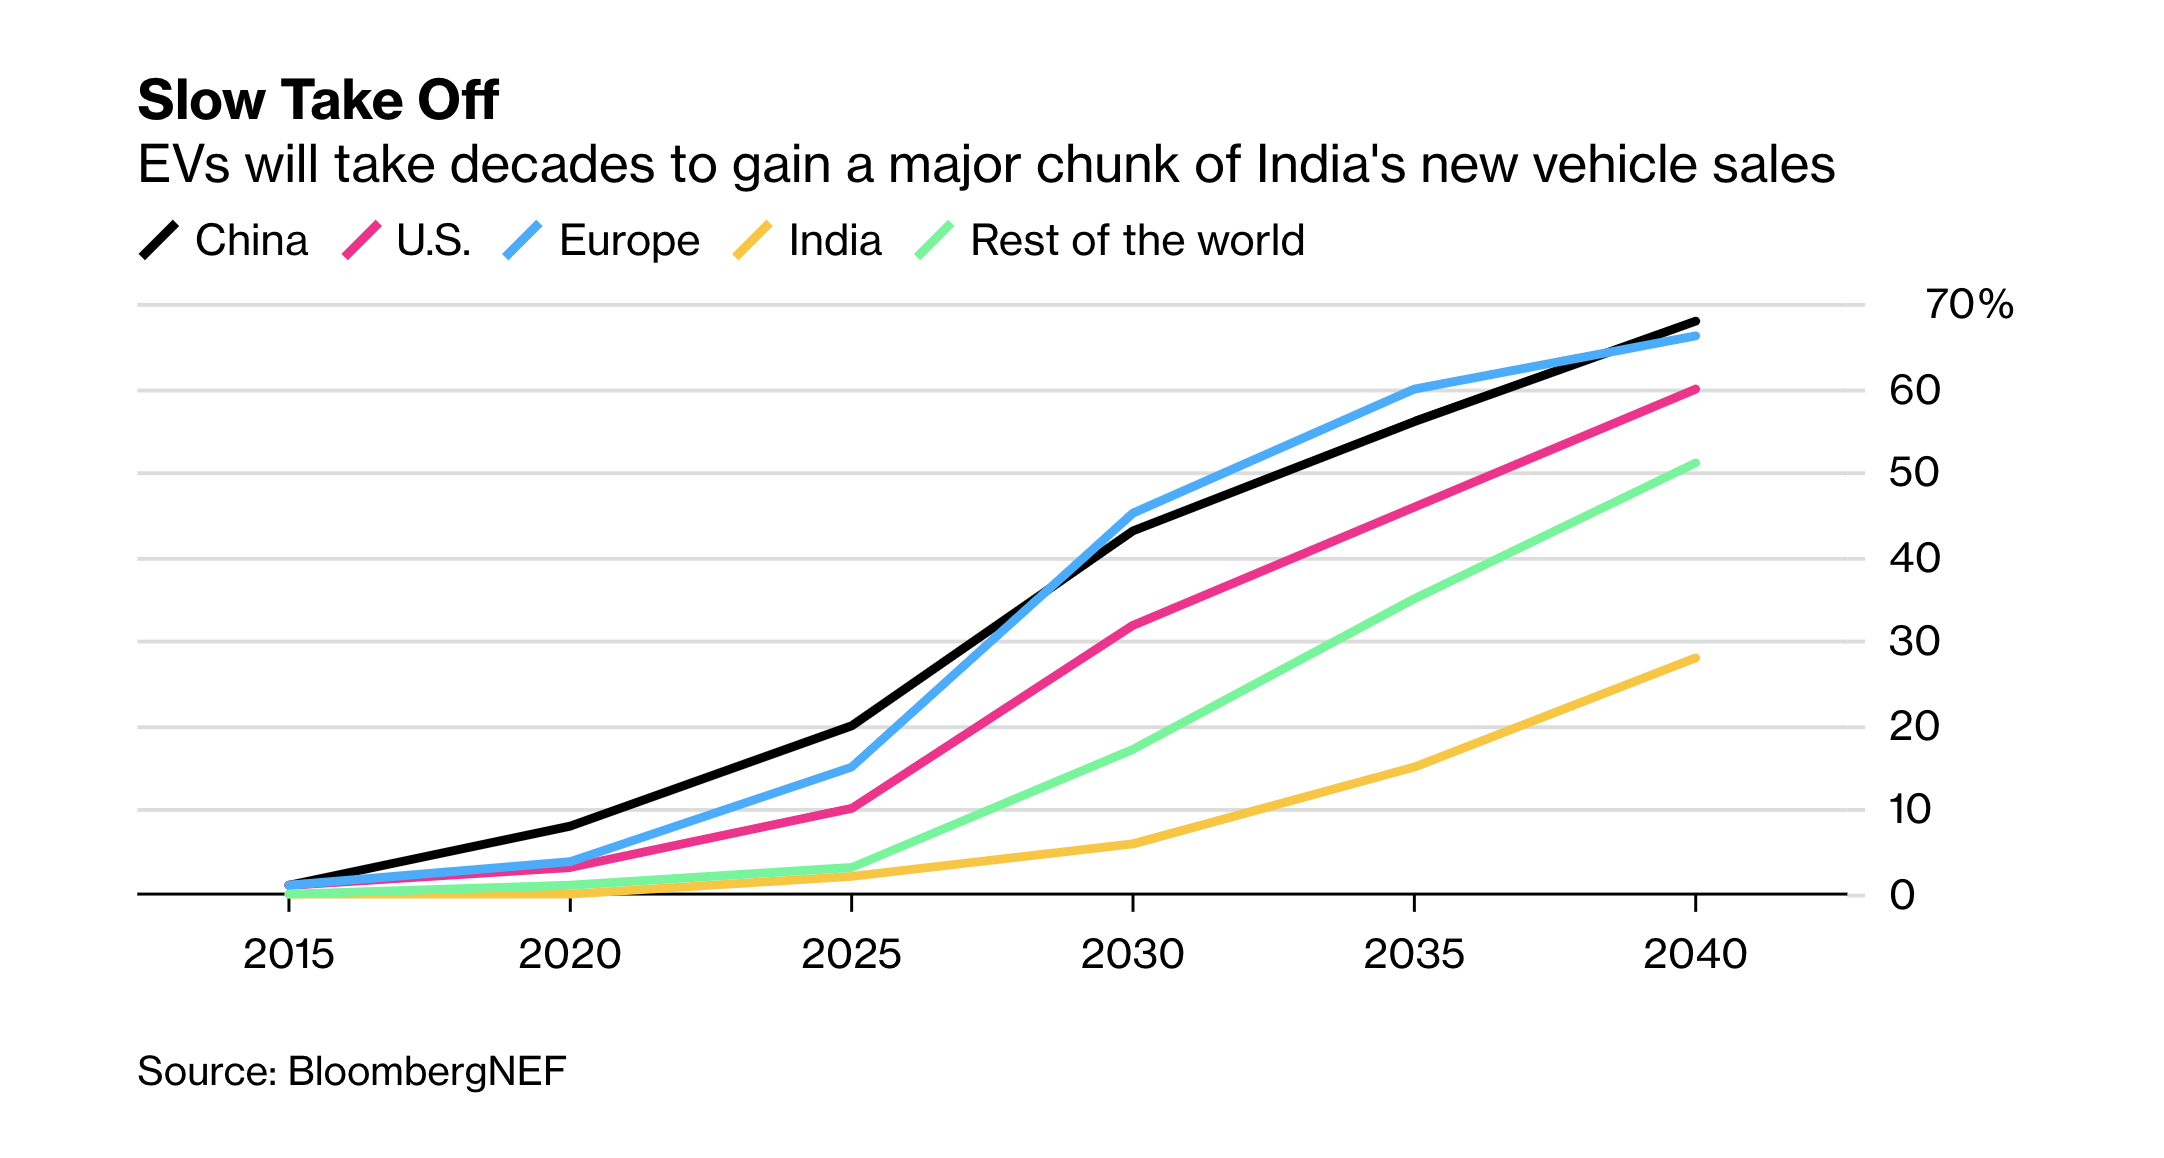 Predicted EV uptake in India